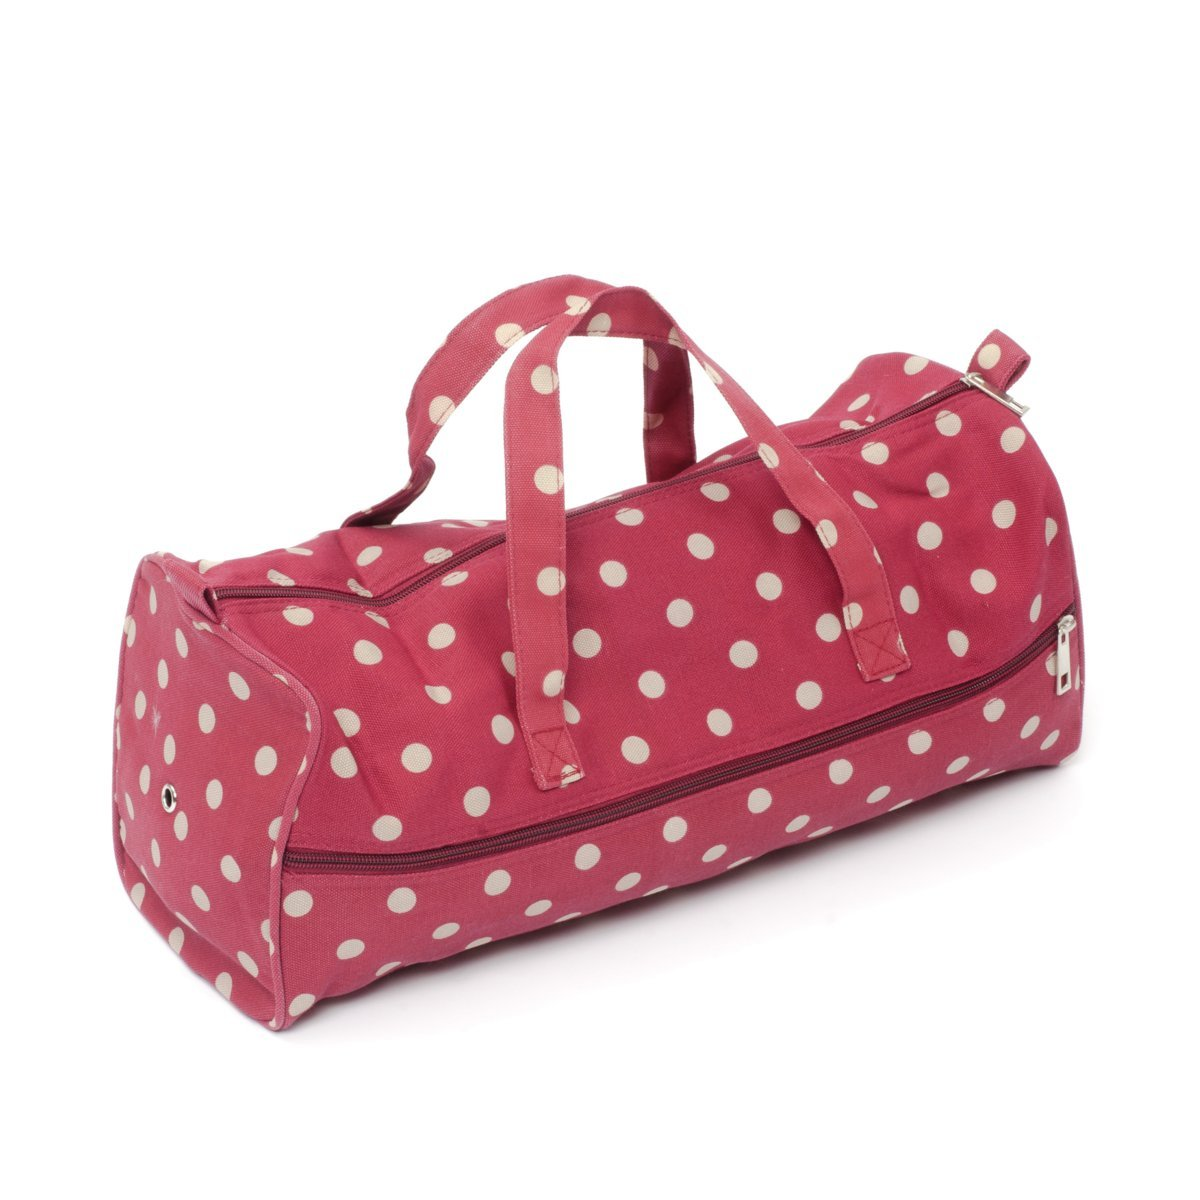 Hobby Gift Polka Dot Design Knitting Bag White Spots on Red (15 x 42 x 17.5cm)